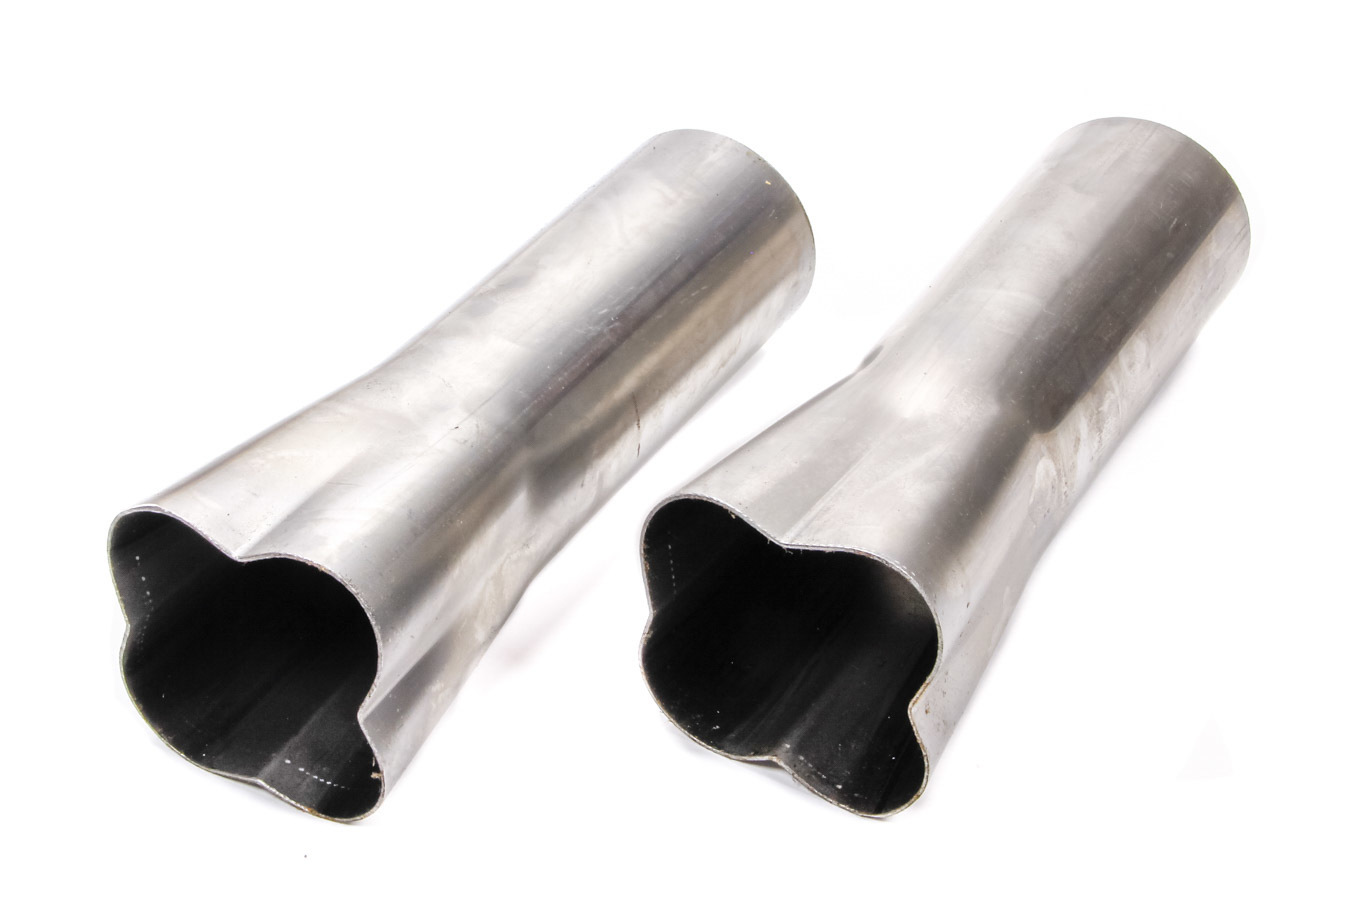 Patriot Exhaust H7670 Collector, Formed, Weld-On, 4 x 1-5/8 in Primary Tubes, 3 in Outlet, 10 in Long, Steel, Natural, Pair